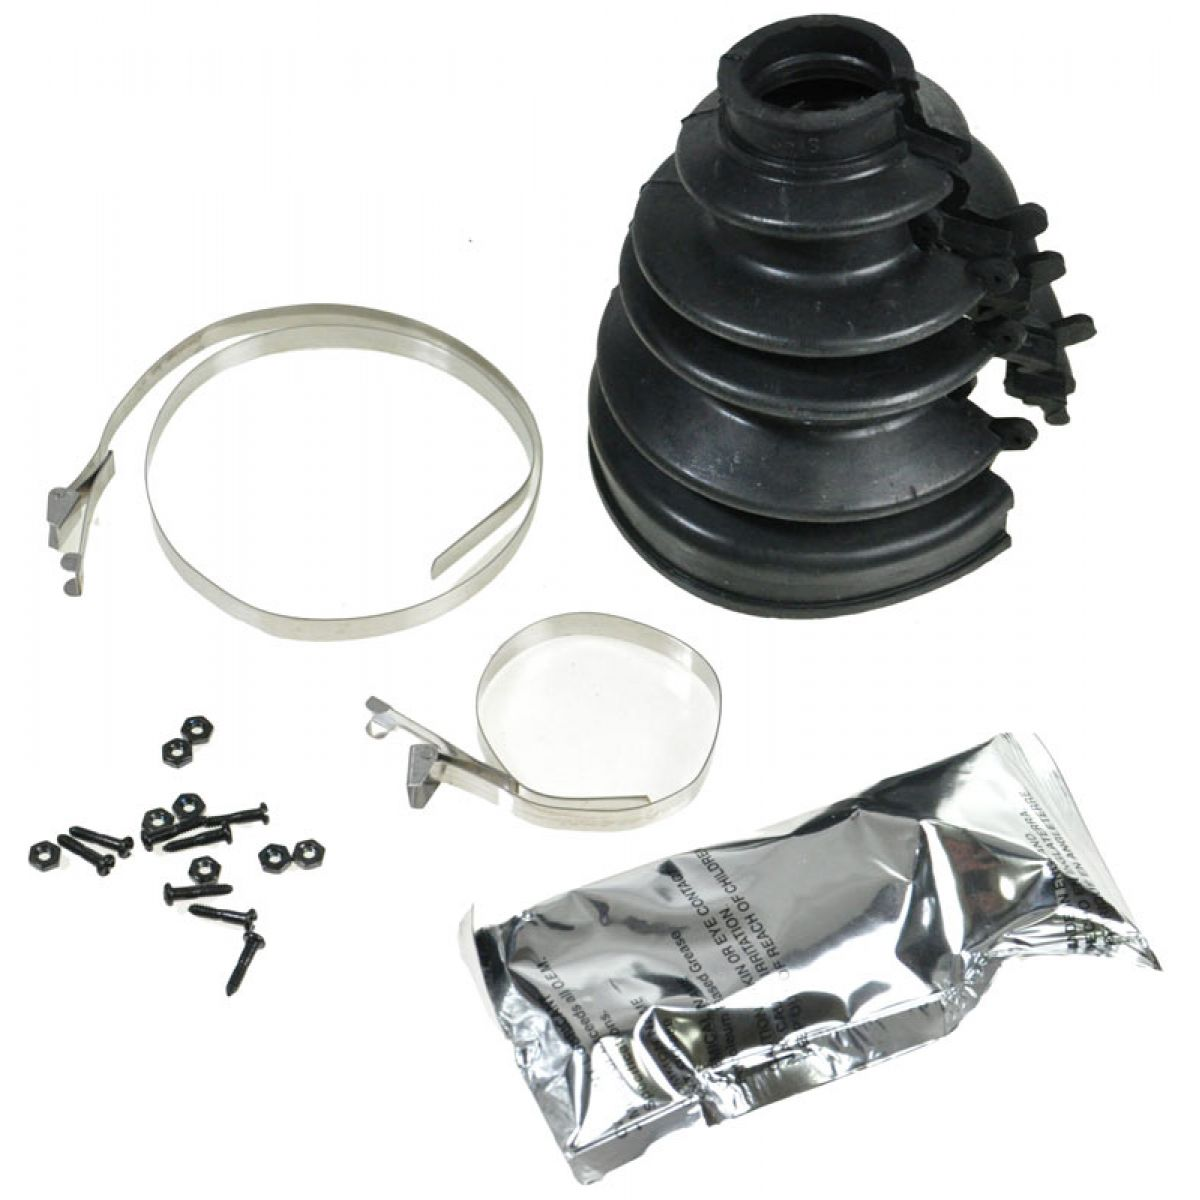 dorman front outer cv joint split boot repair kit for nissan toyota new 37495036139